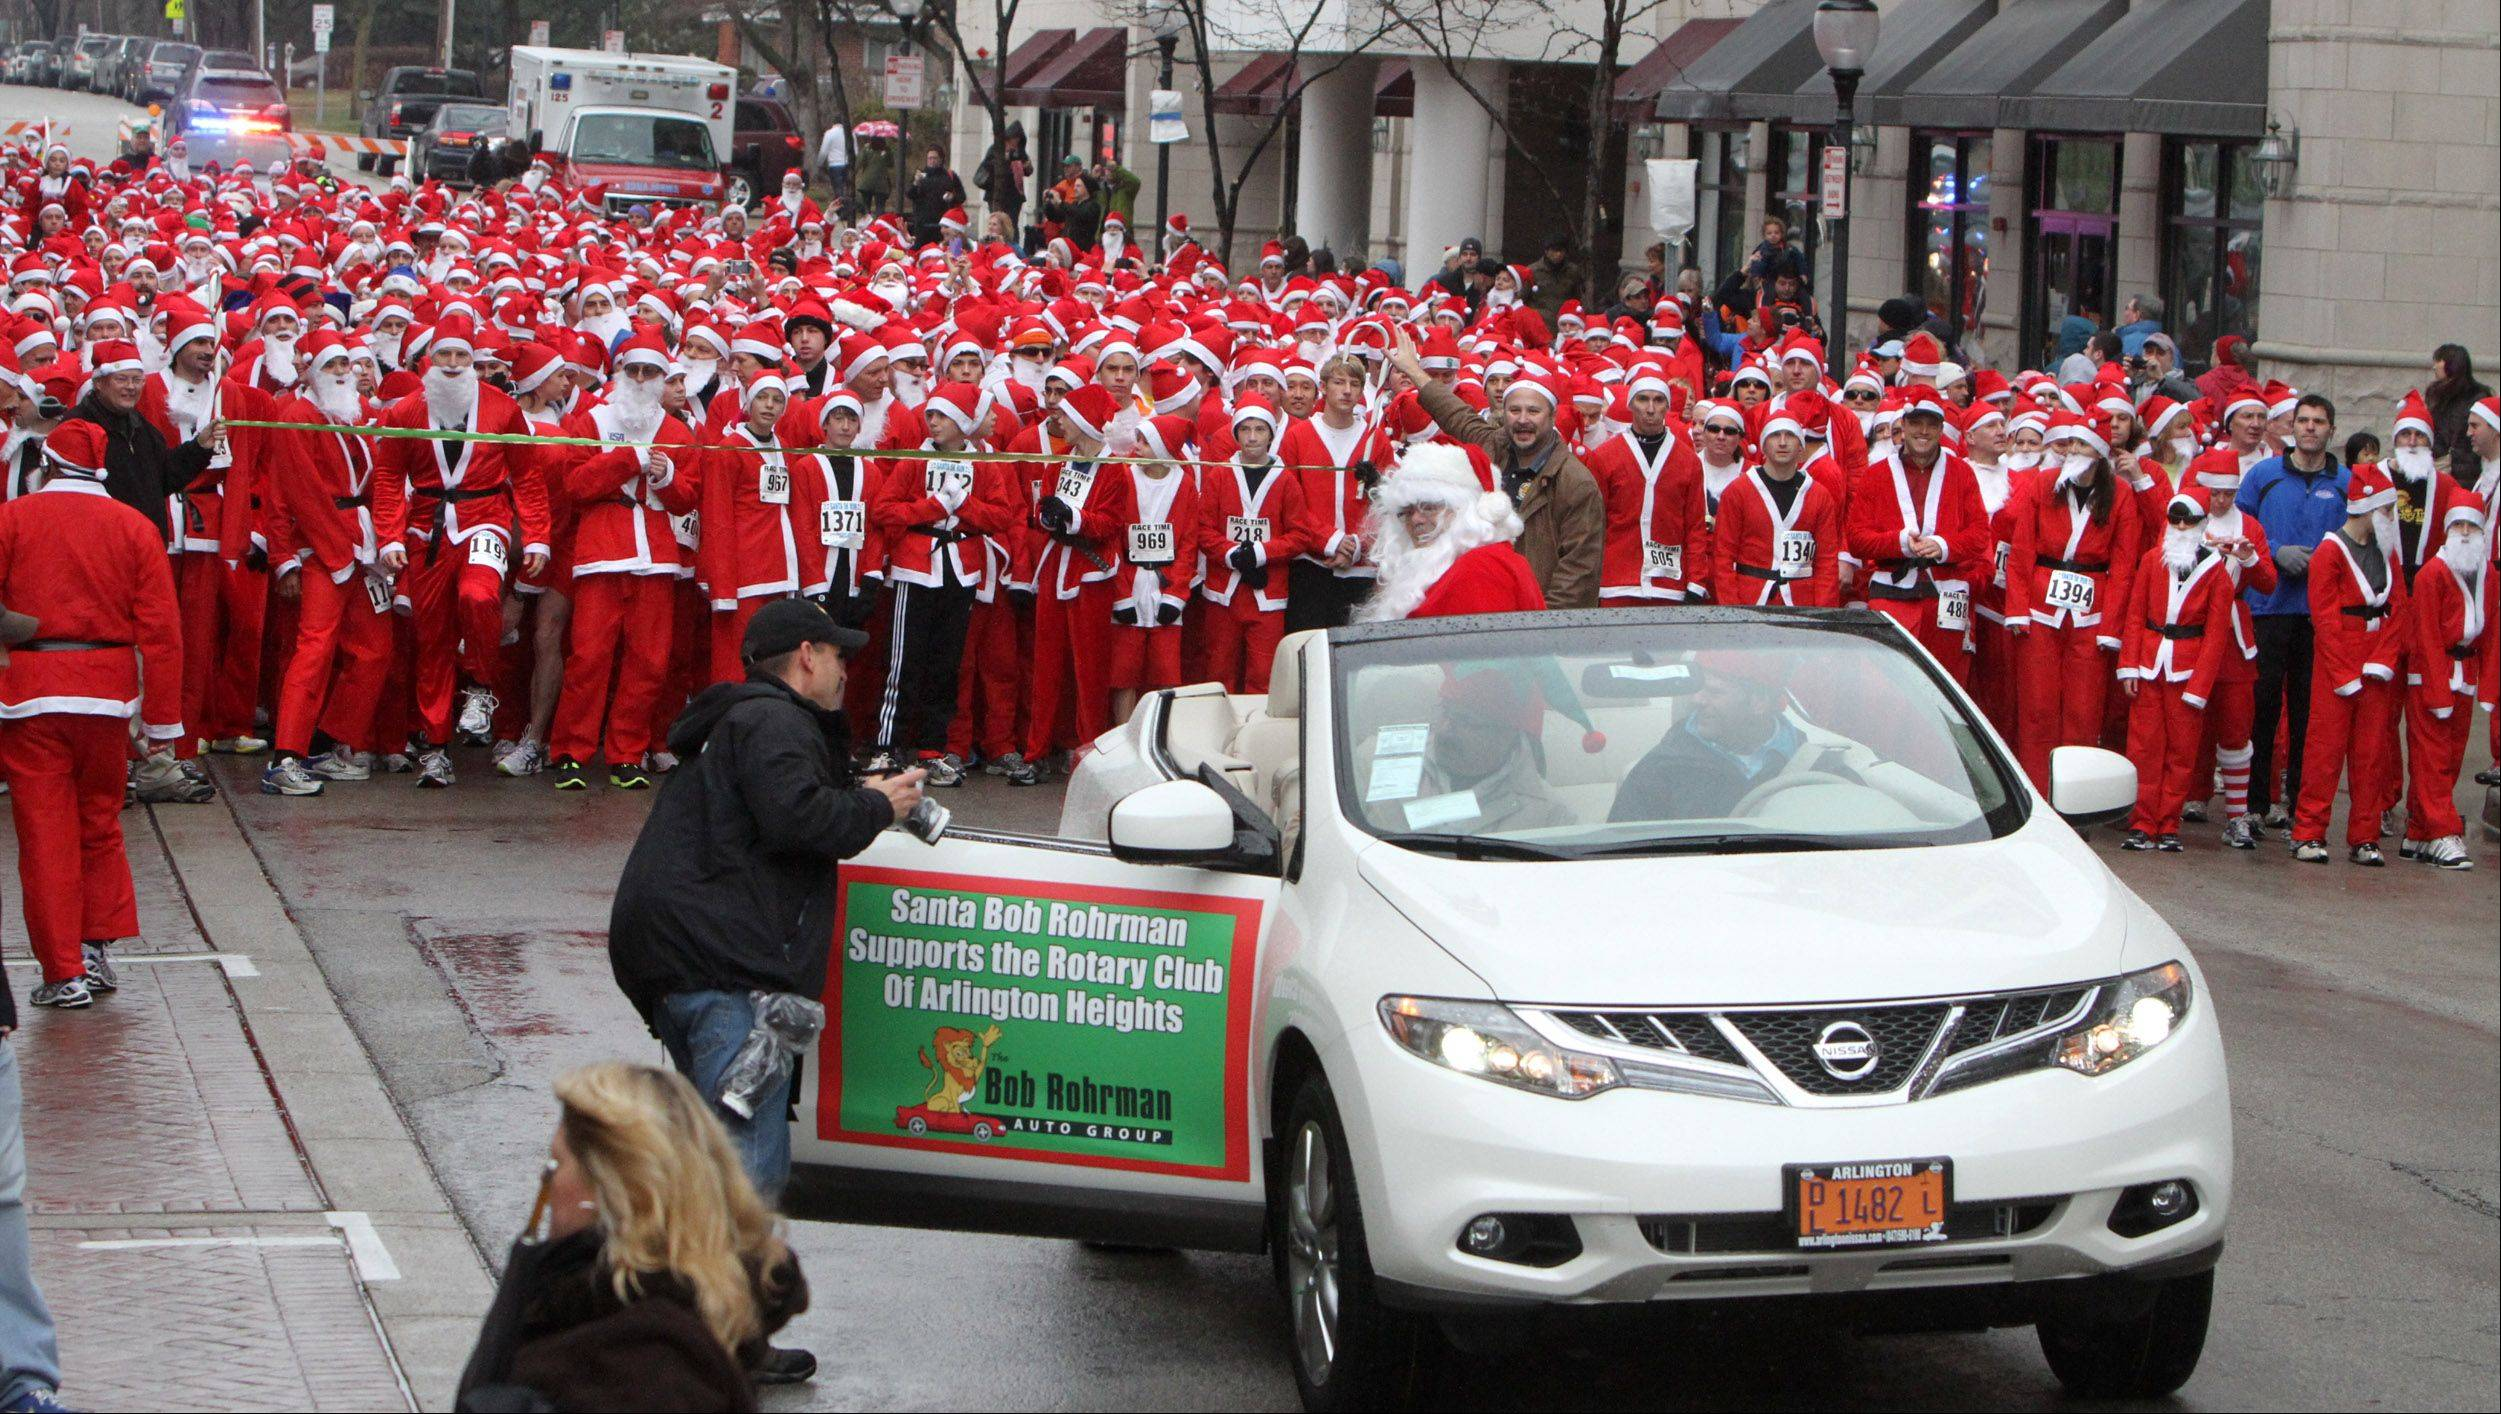 Bob Rohrman as Santa Claus was the celebrity race-starter in 2011.